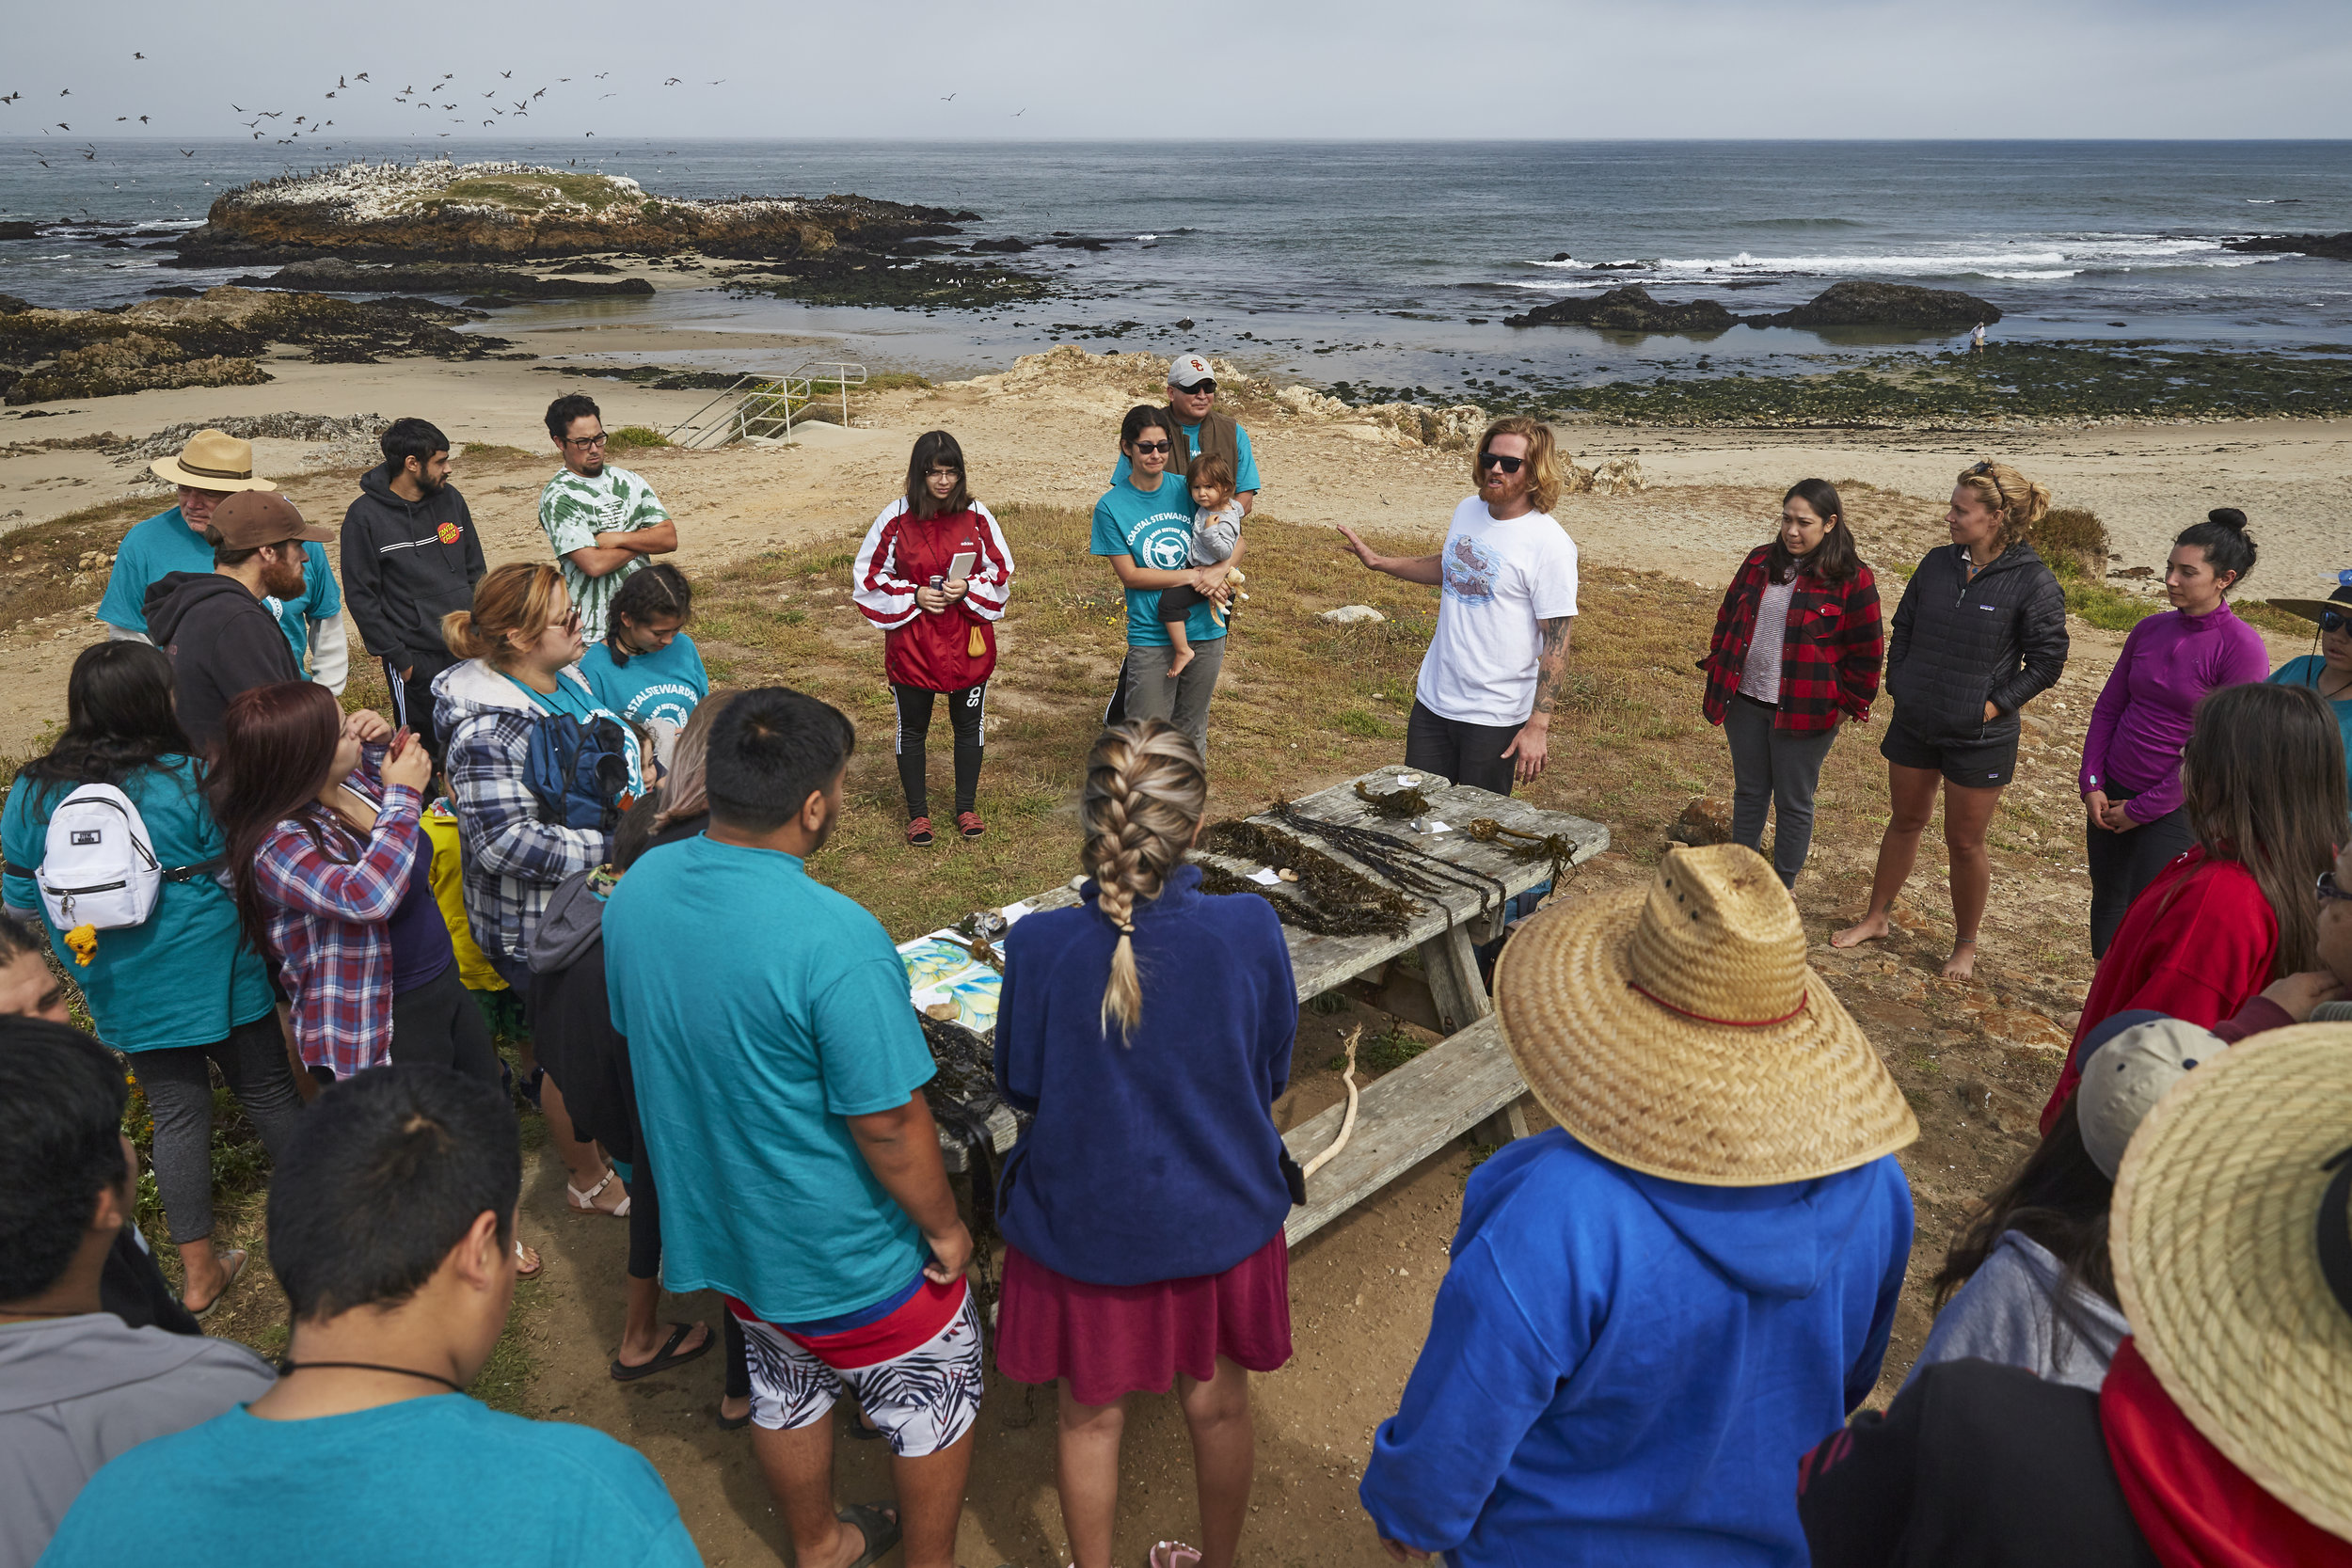 Amah Mutsun youth campers and UC Berkeley researchers getting ready for a day at the beach. Photo courtesy of Rob Brodman